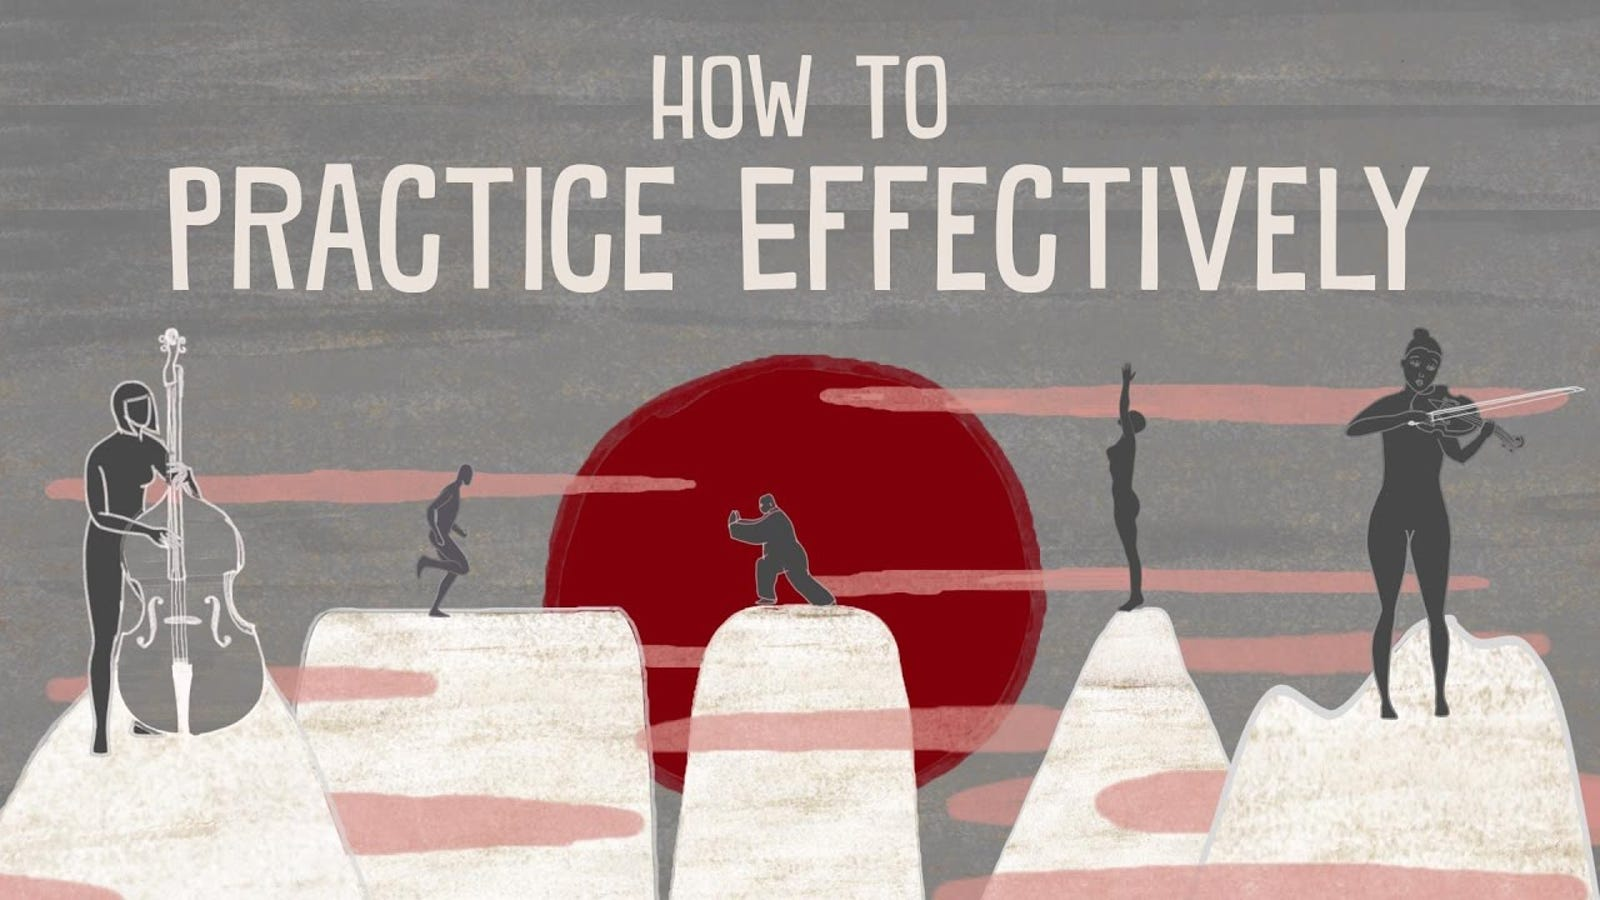 The Four Keys to Effective Practice